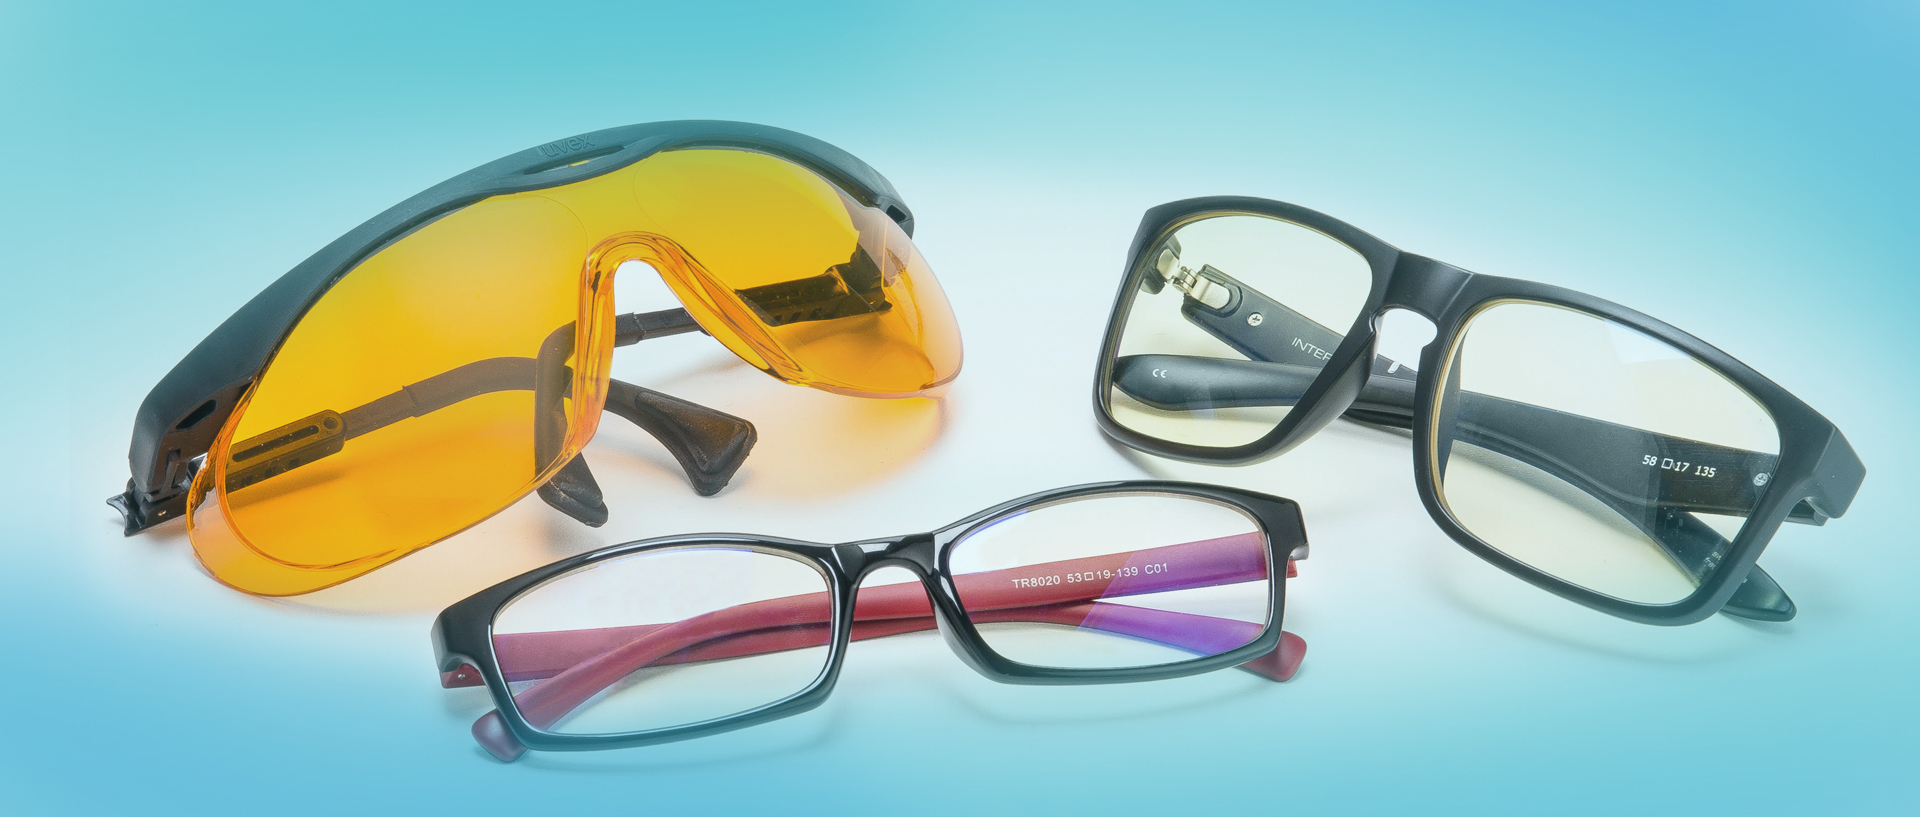 9e4ee43c42 3 Blue Blockers Put to the Test - Consumer Reports